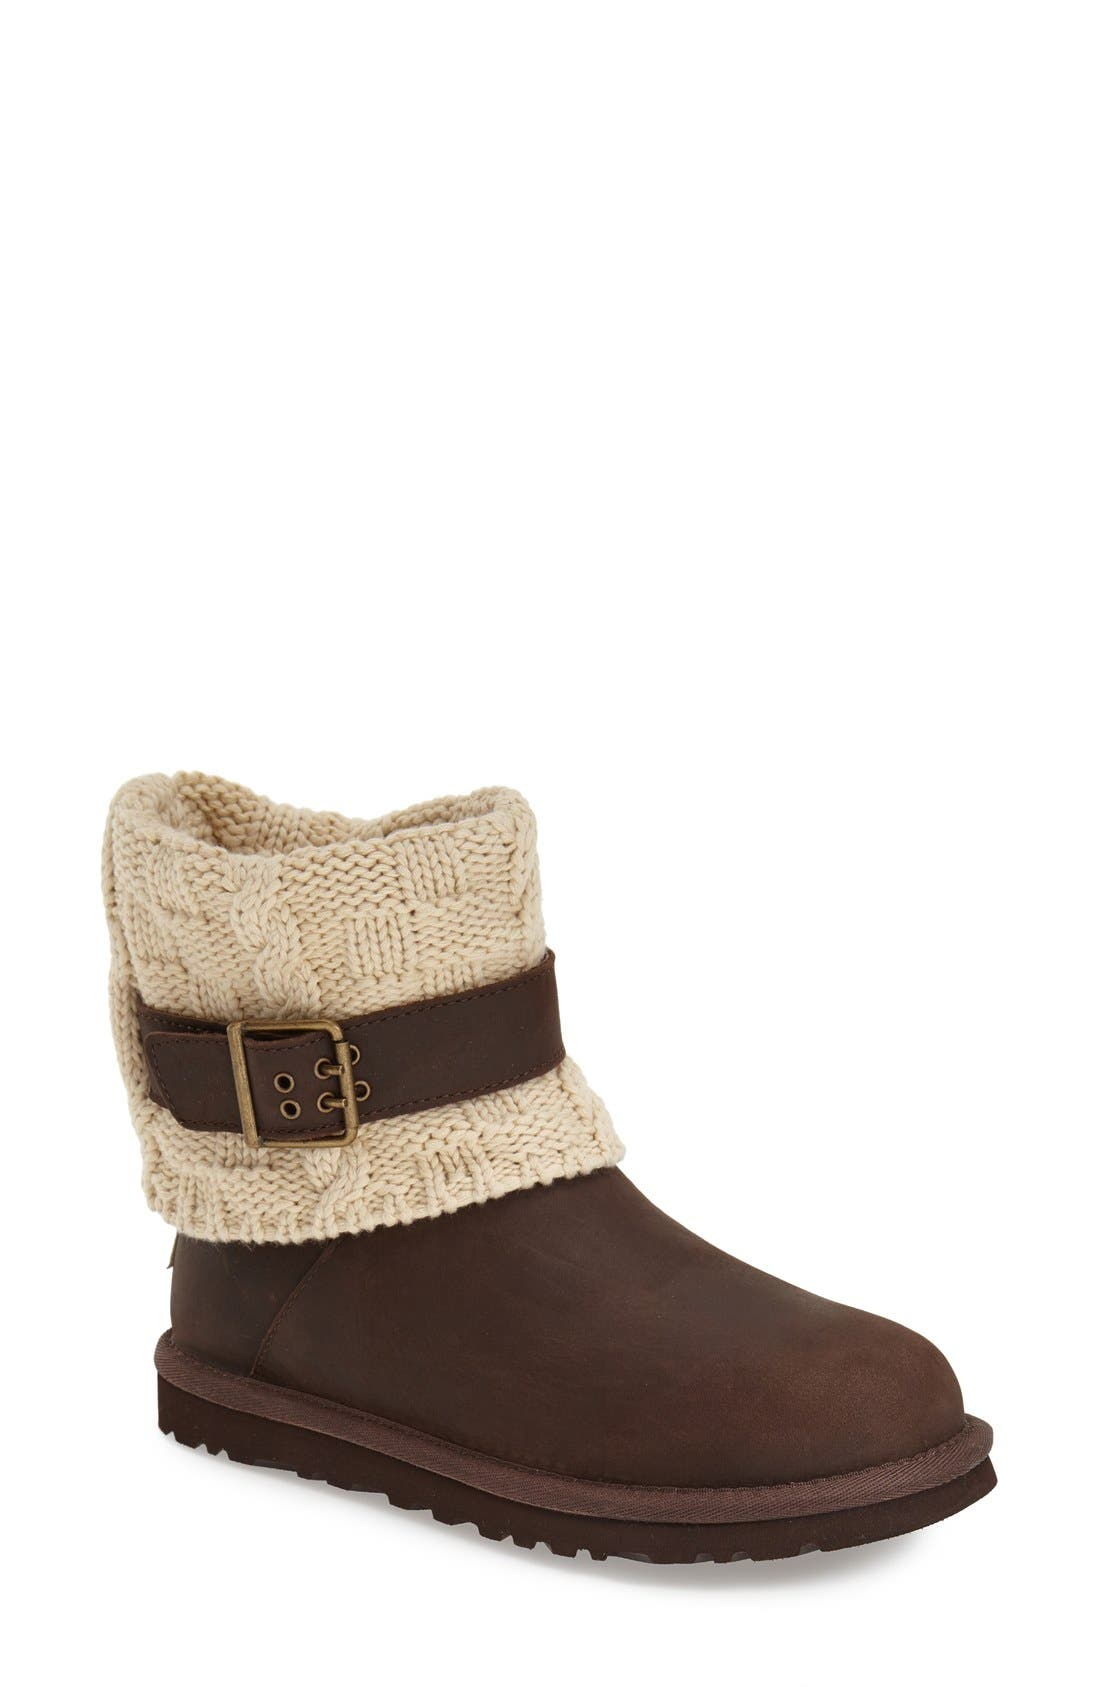 Alternate Image 1 Selected - UGG® 'Cassidee' Cable Knit Boot (Women)